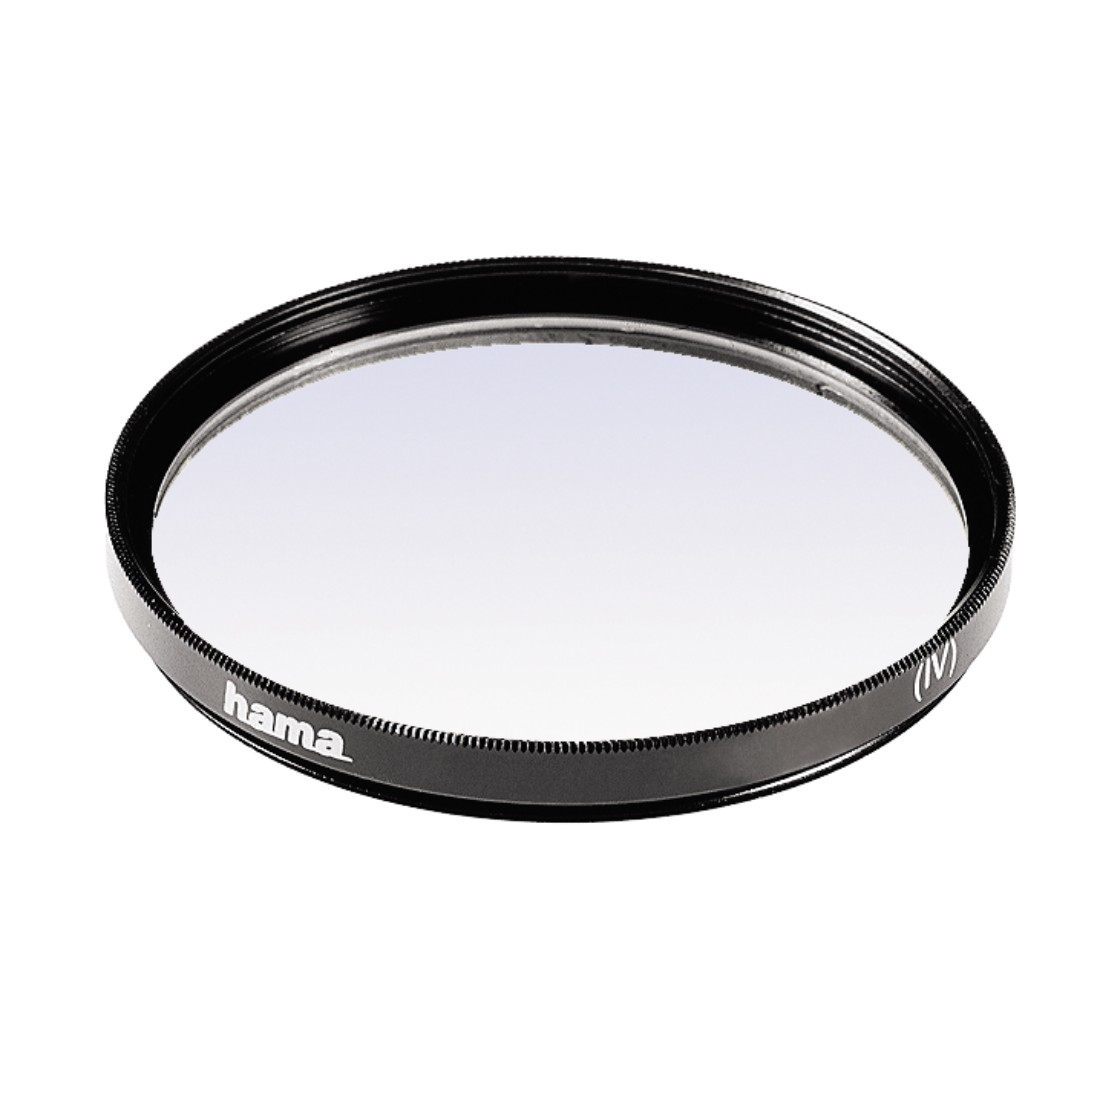 abx High-Res Image - Hama, UV Filter, coated, 55.0 mm